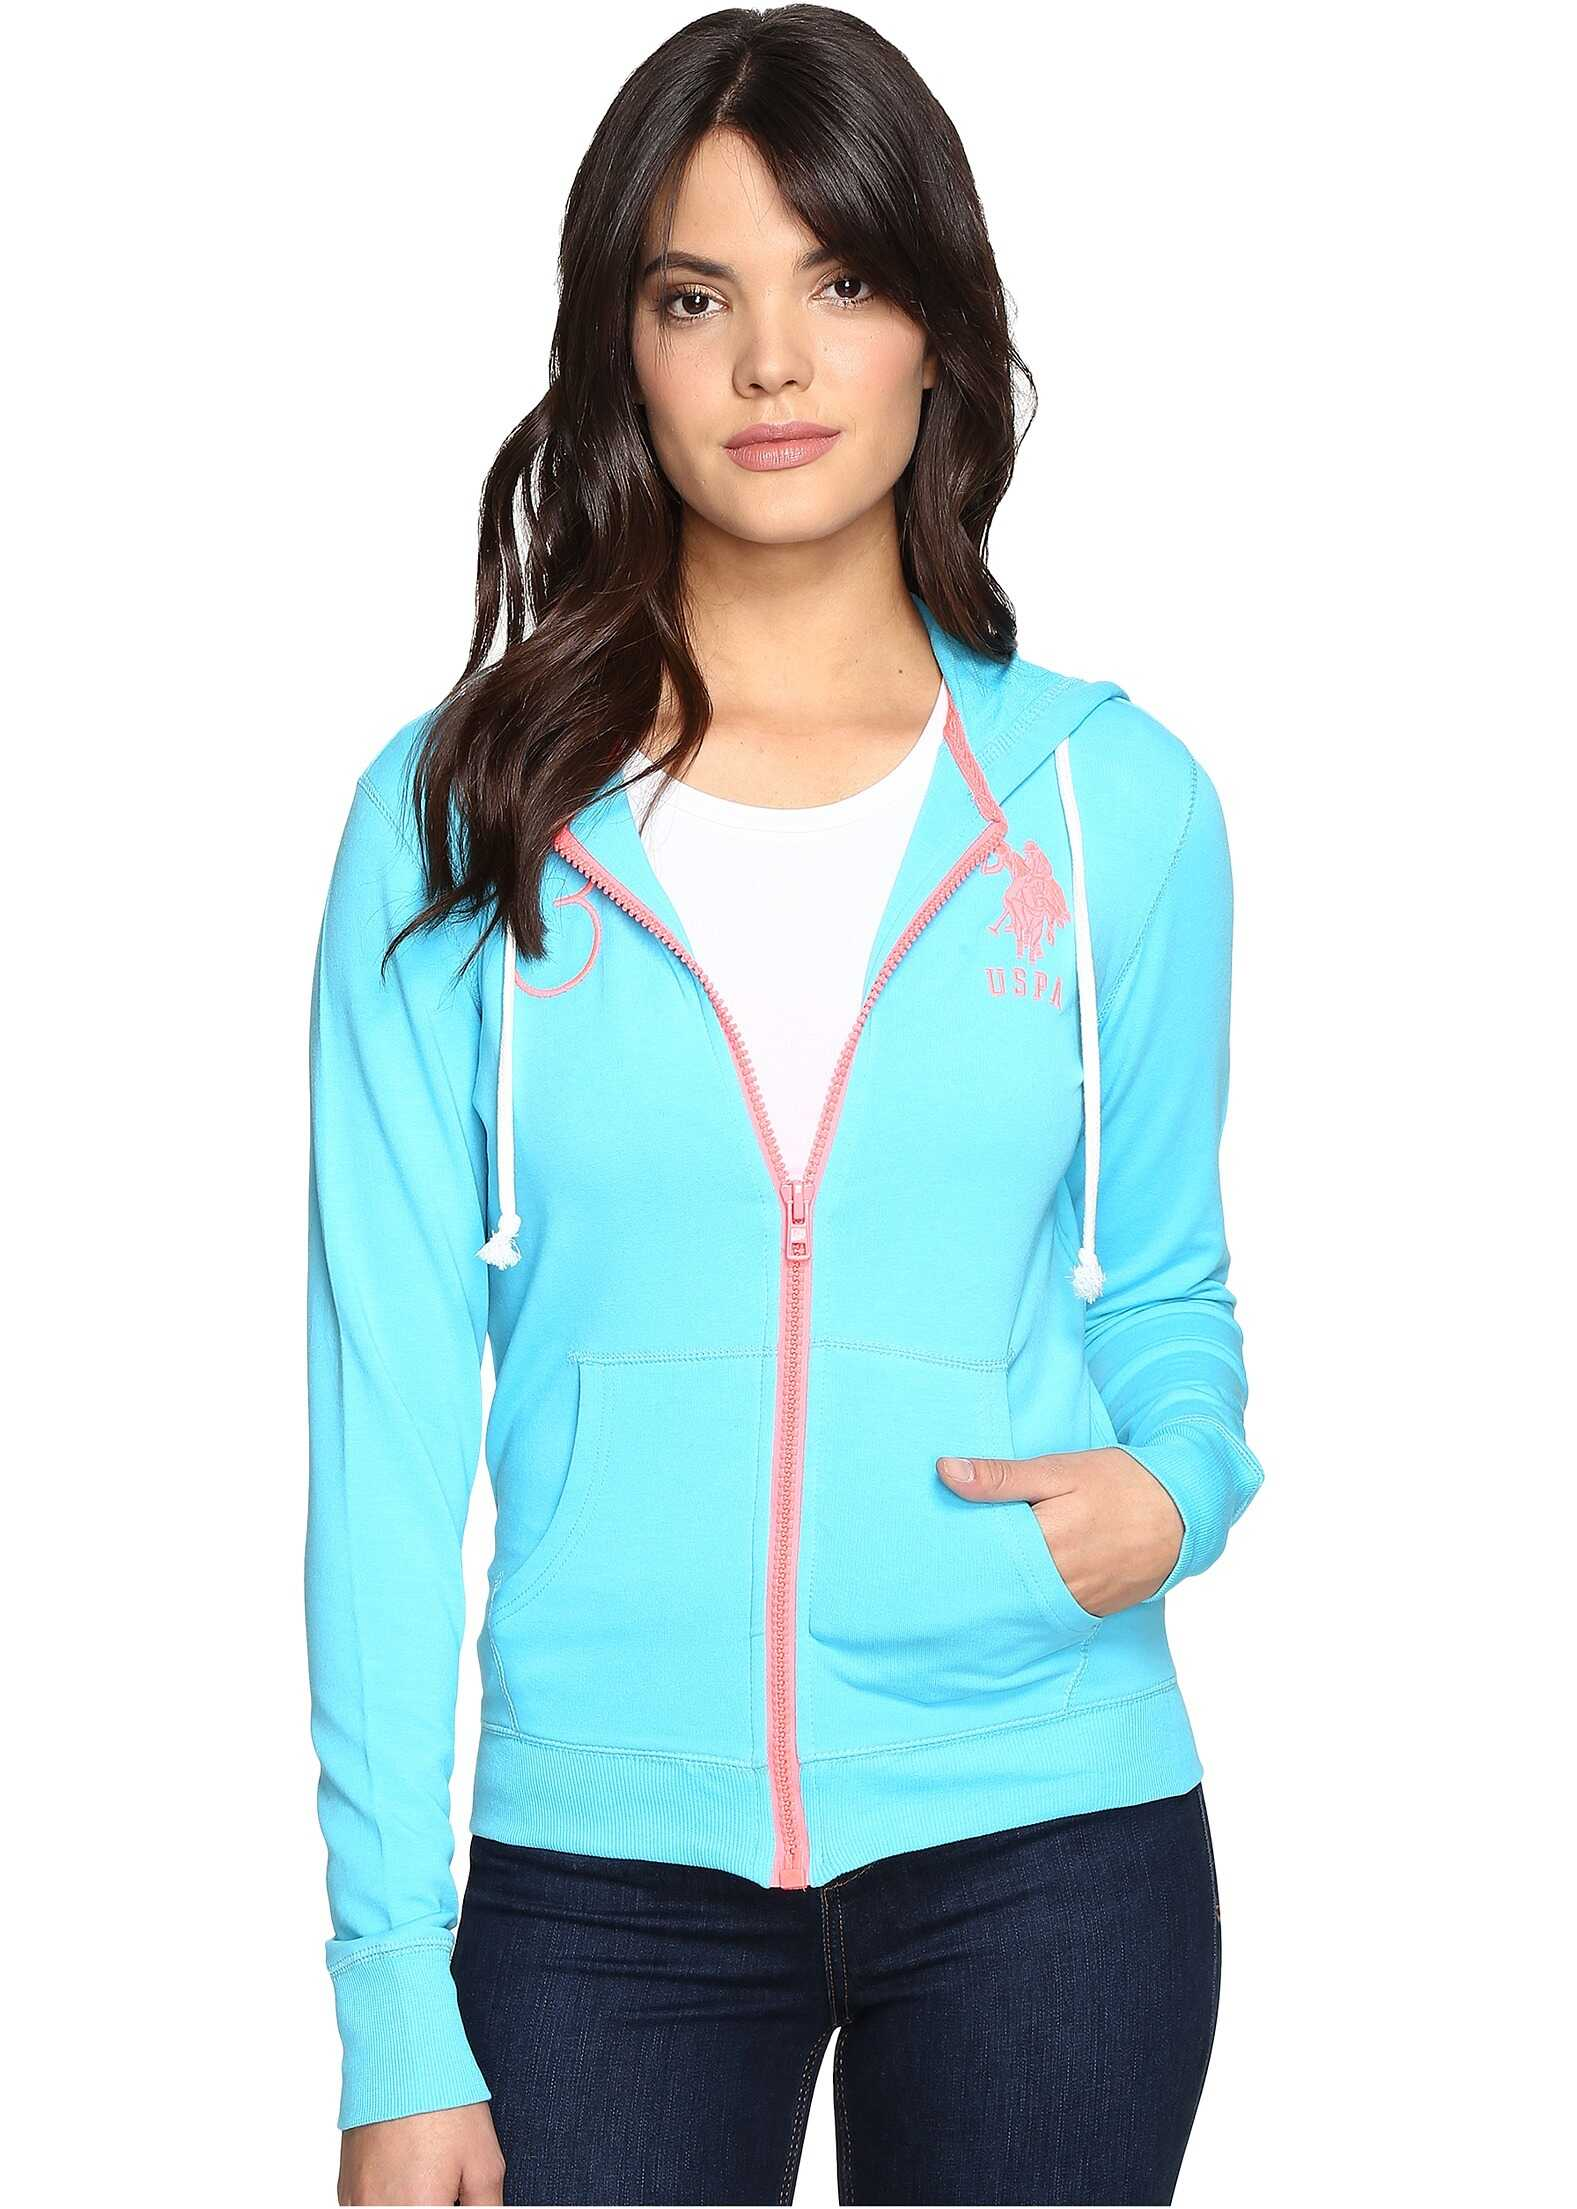 U.S. POLO ASSN. Neon Pop French Terry Hoodie Blue Atoll